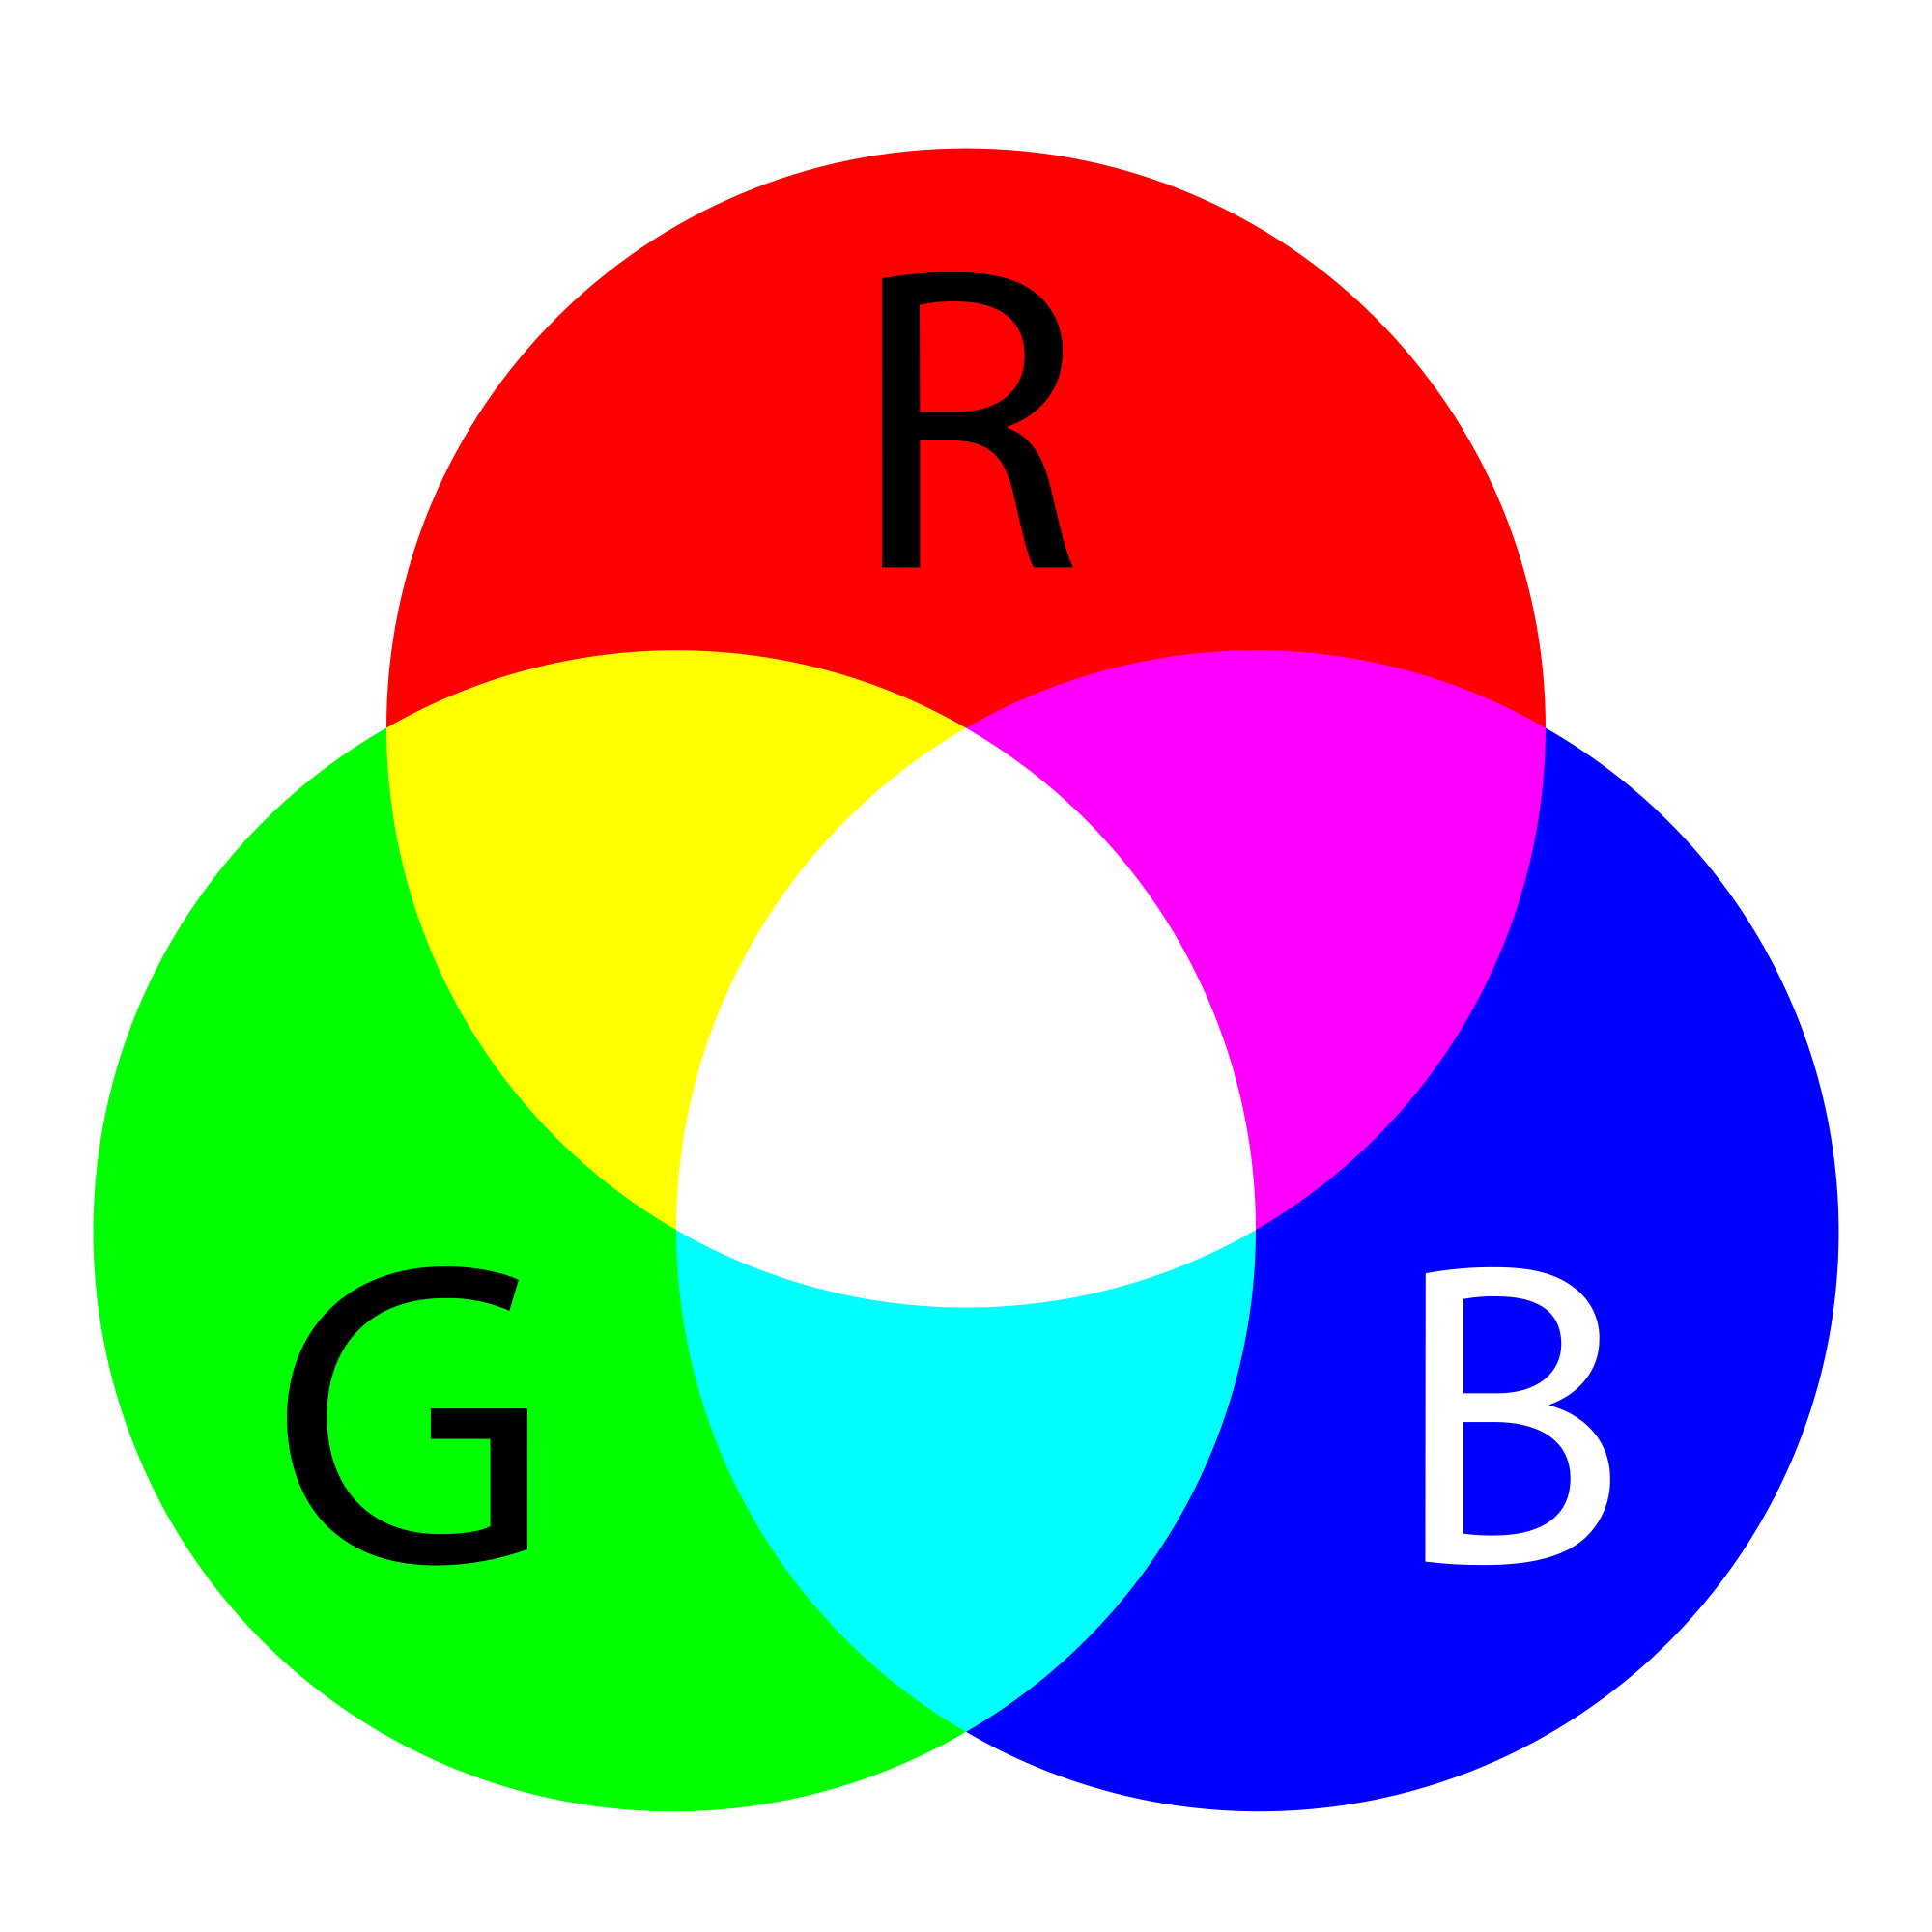 ../_images/RGB.png